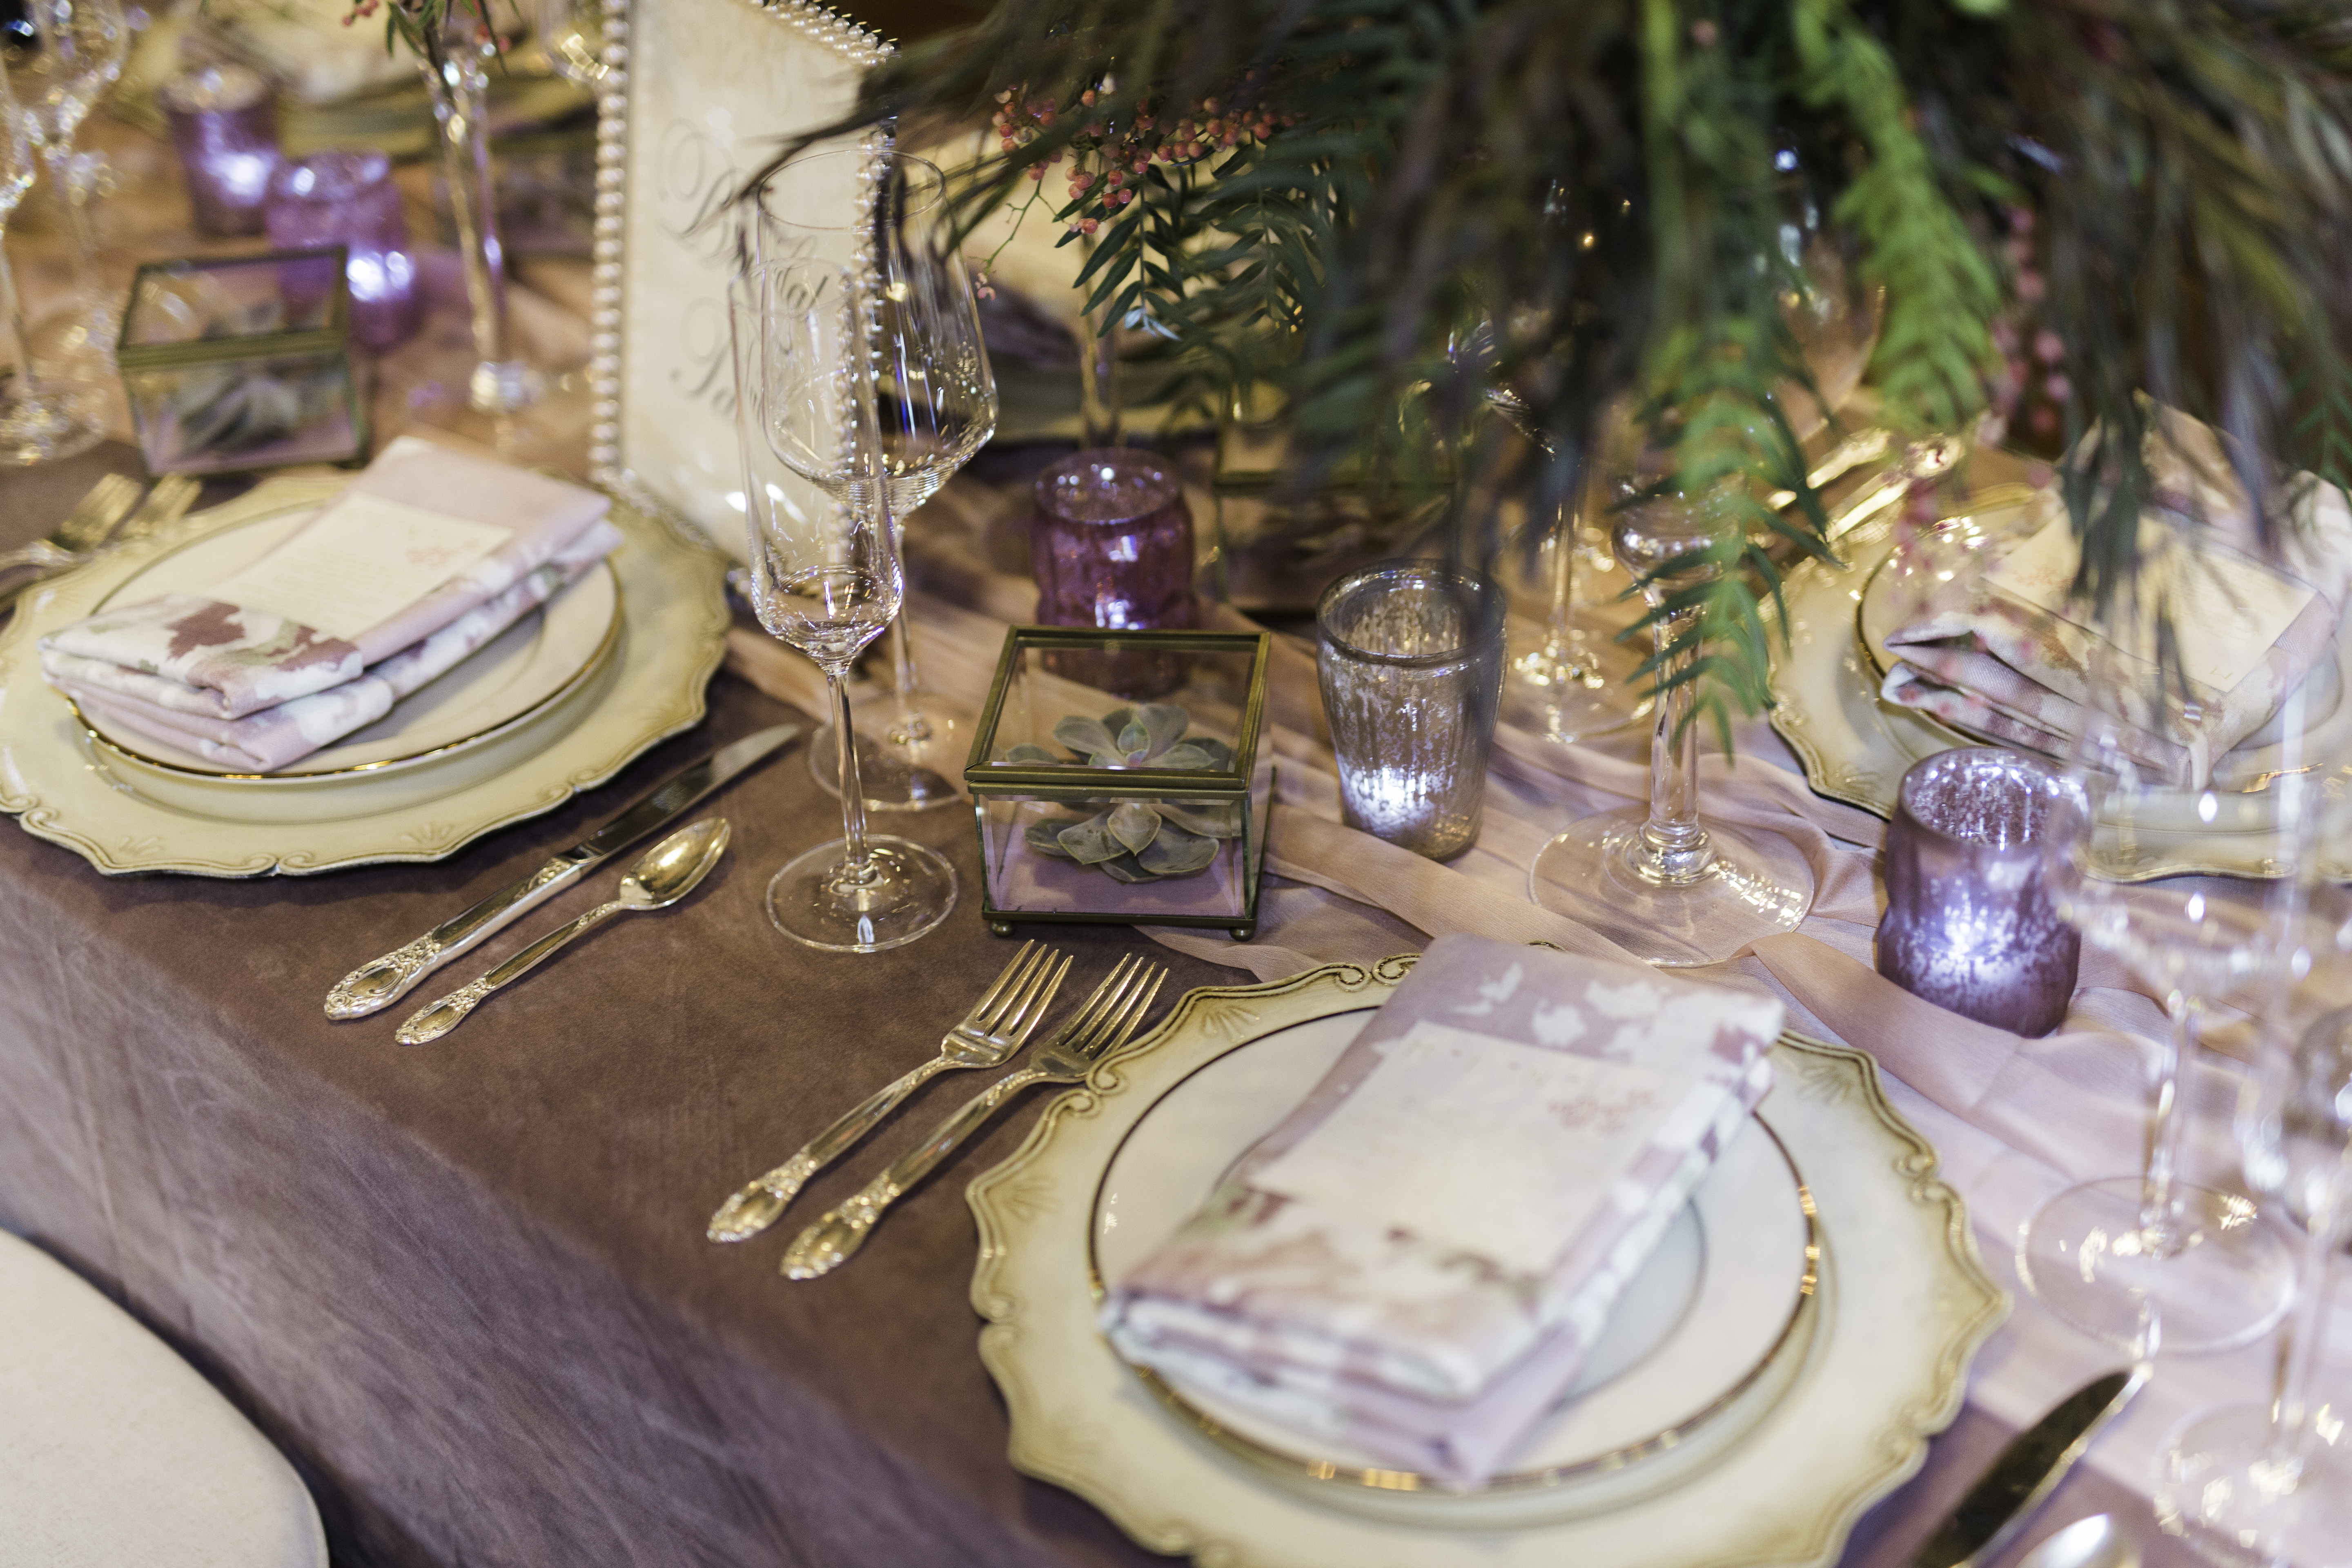 Bridal table details